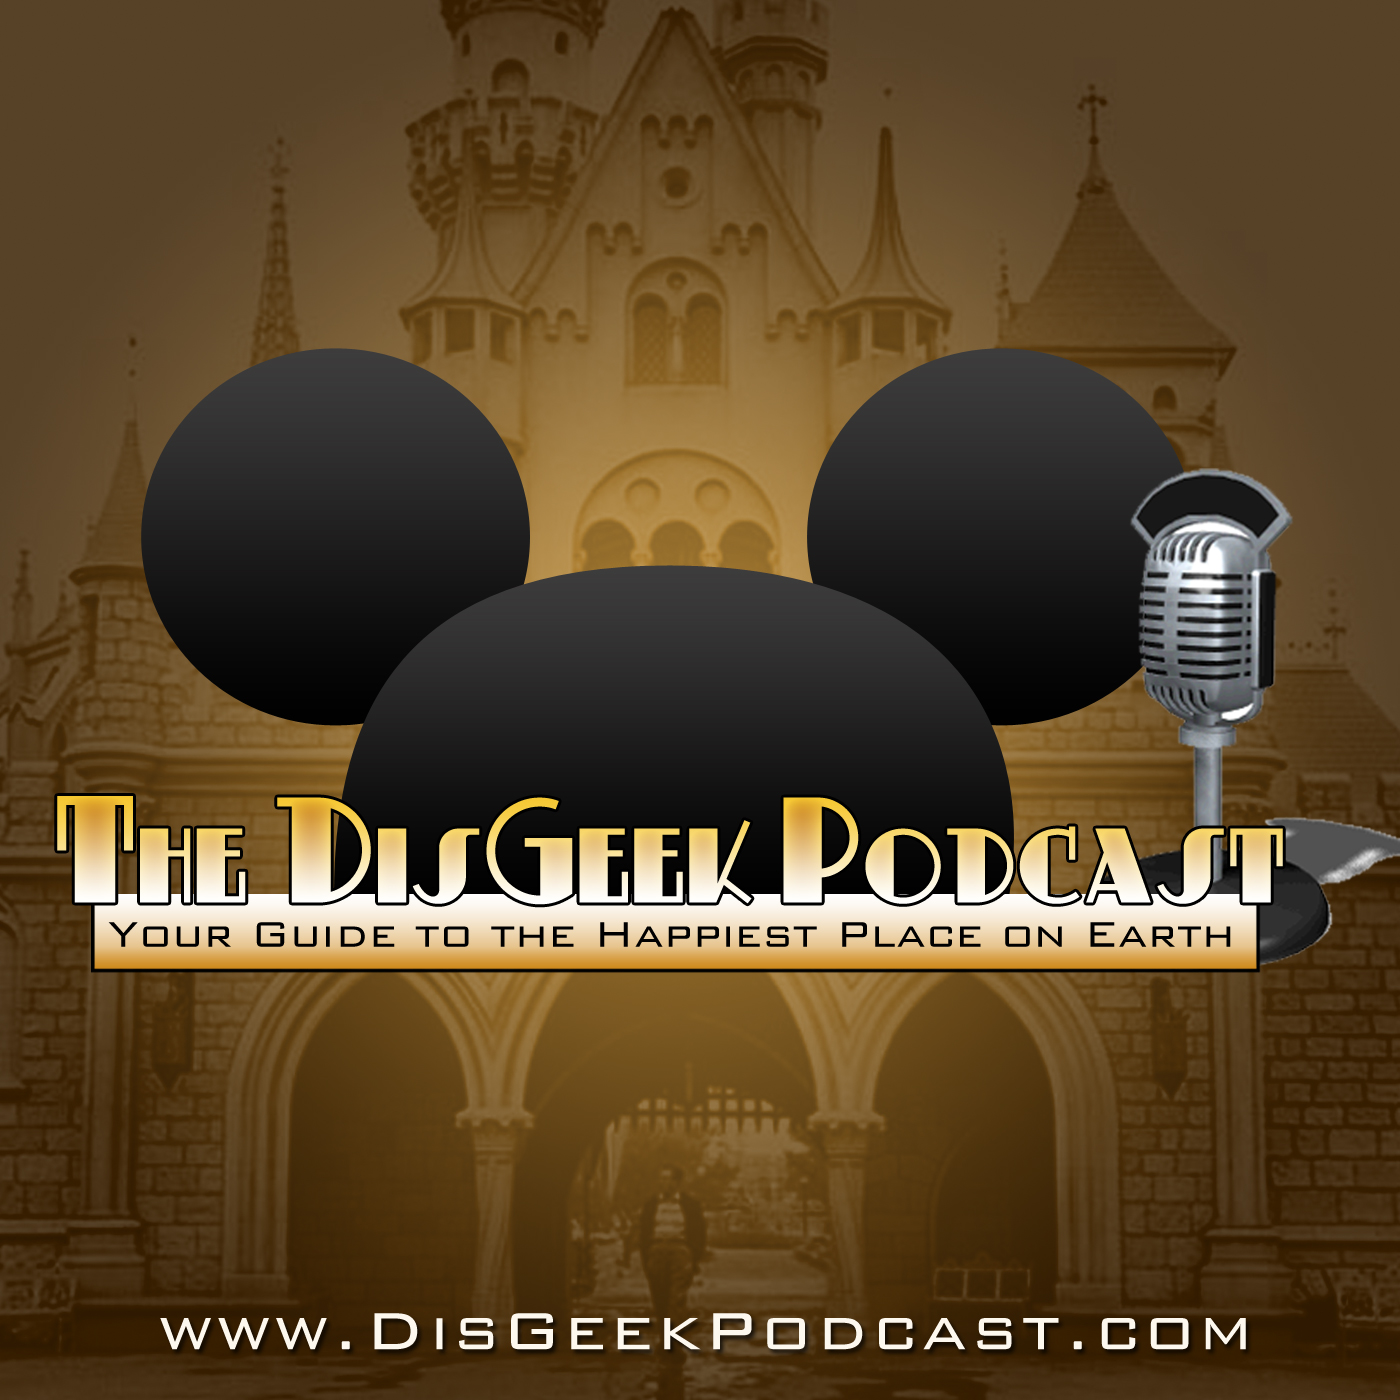 The DisGeek Podcast 130 - Cabana's coming to Disneyland!?